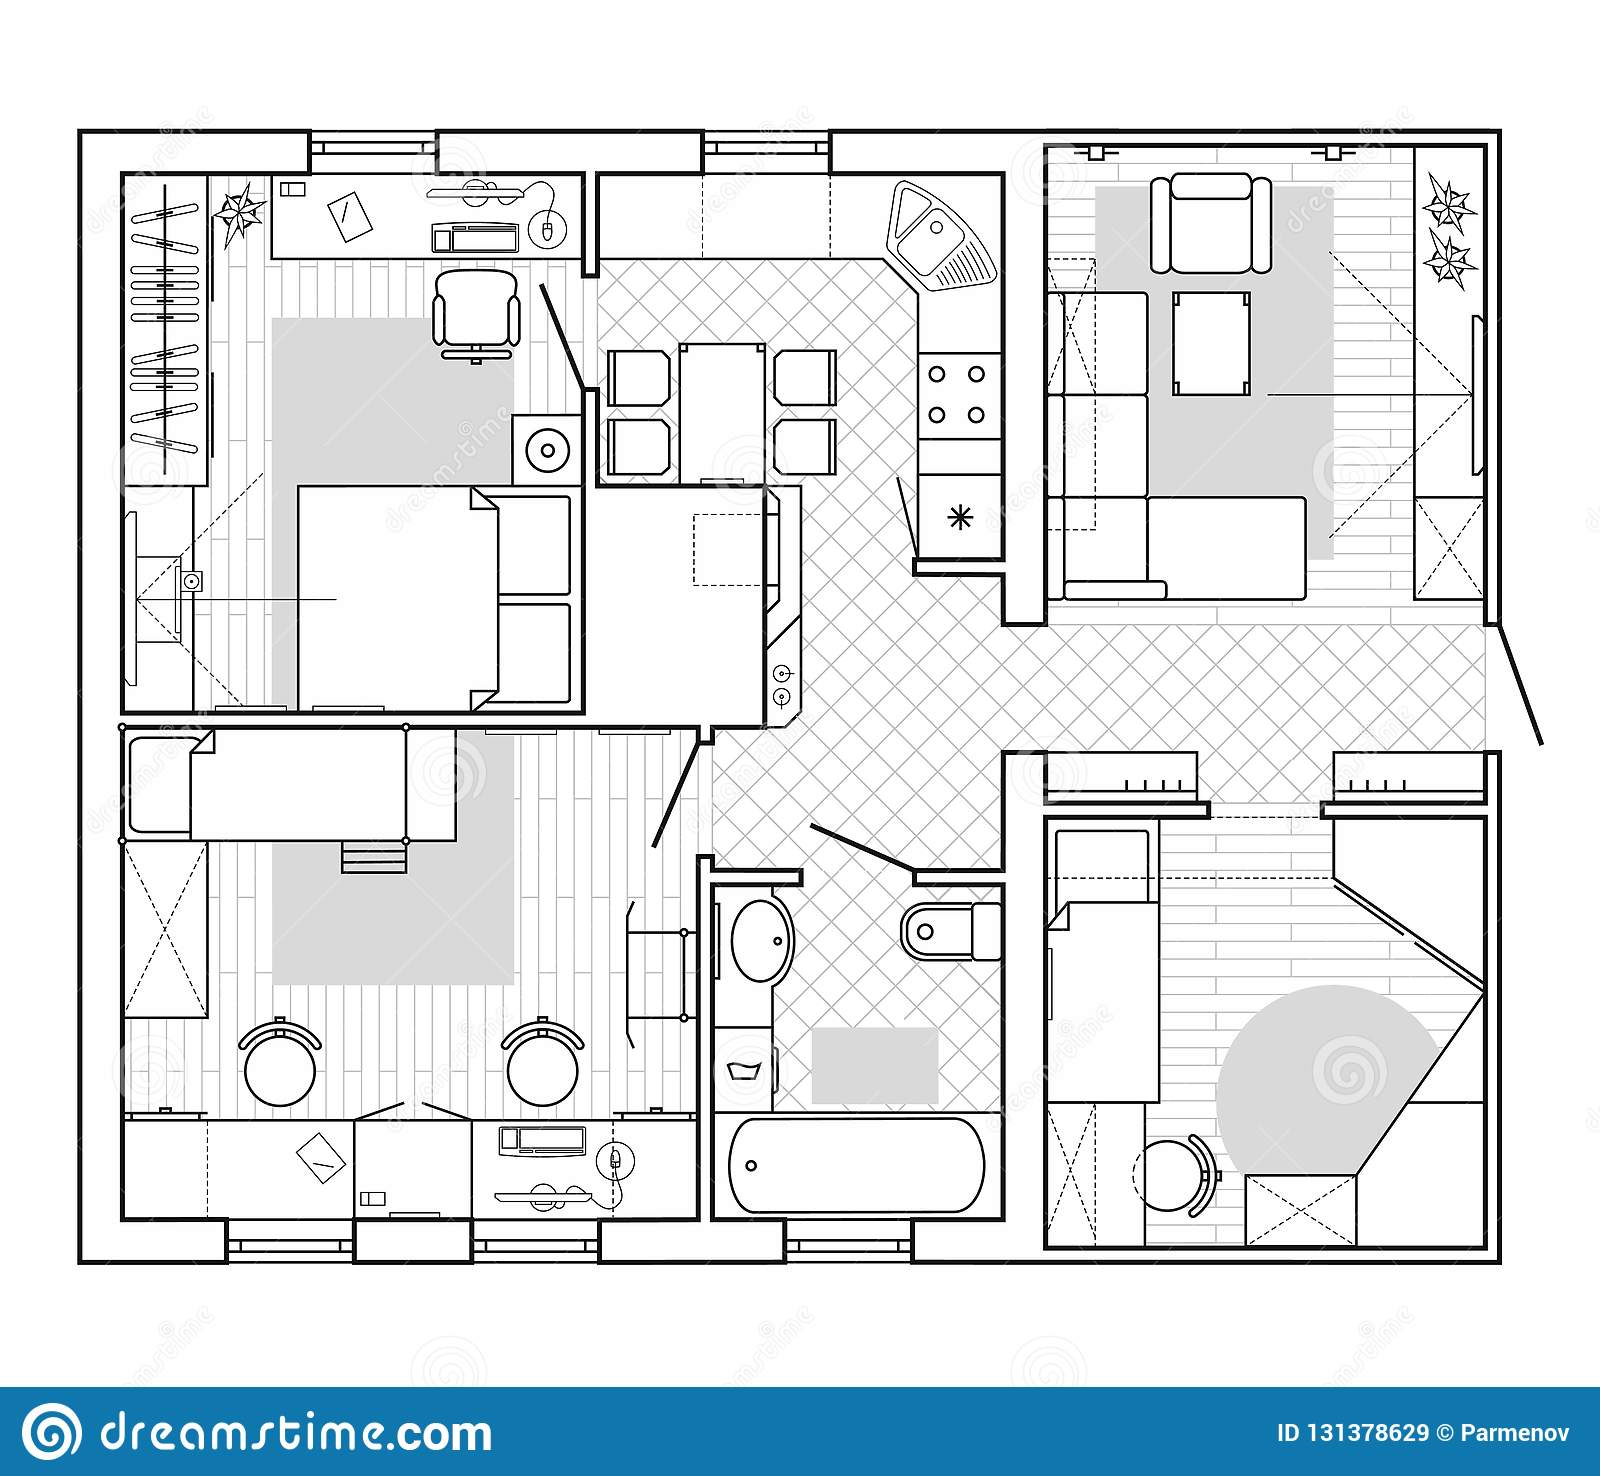 Architectural Plan Of A House Floor Plan Of The Apartment